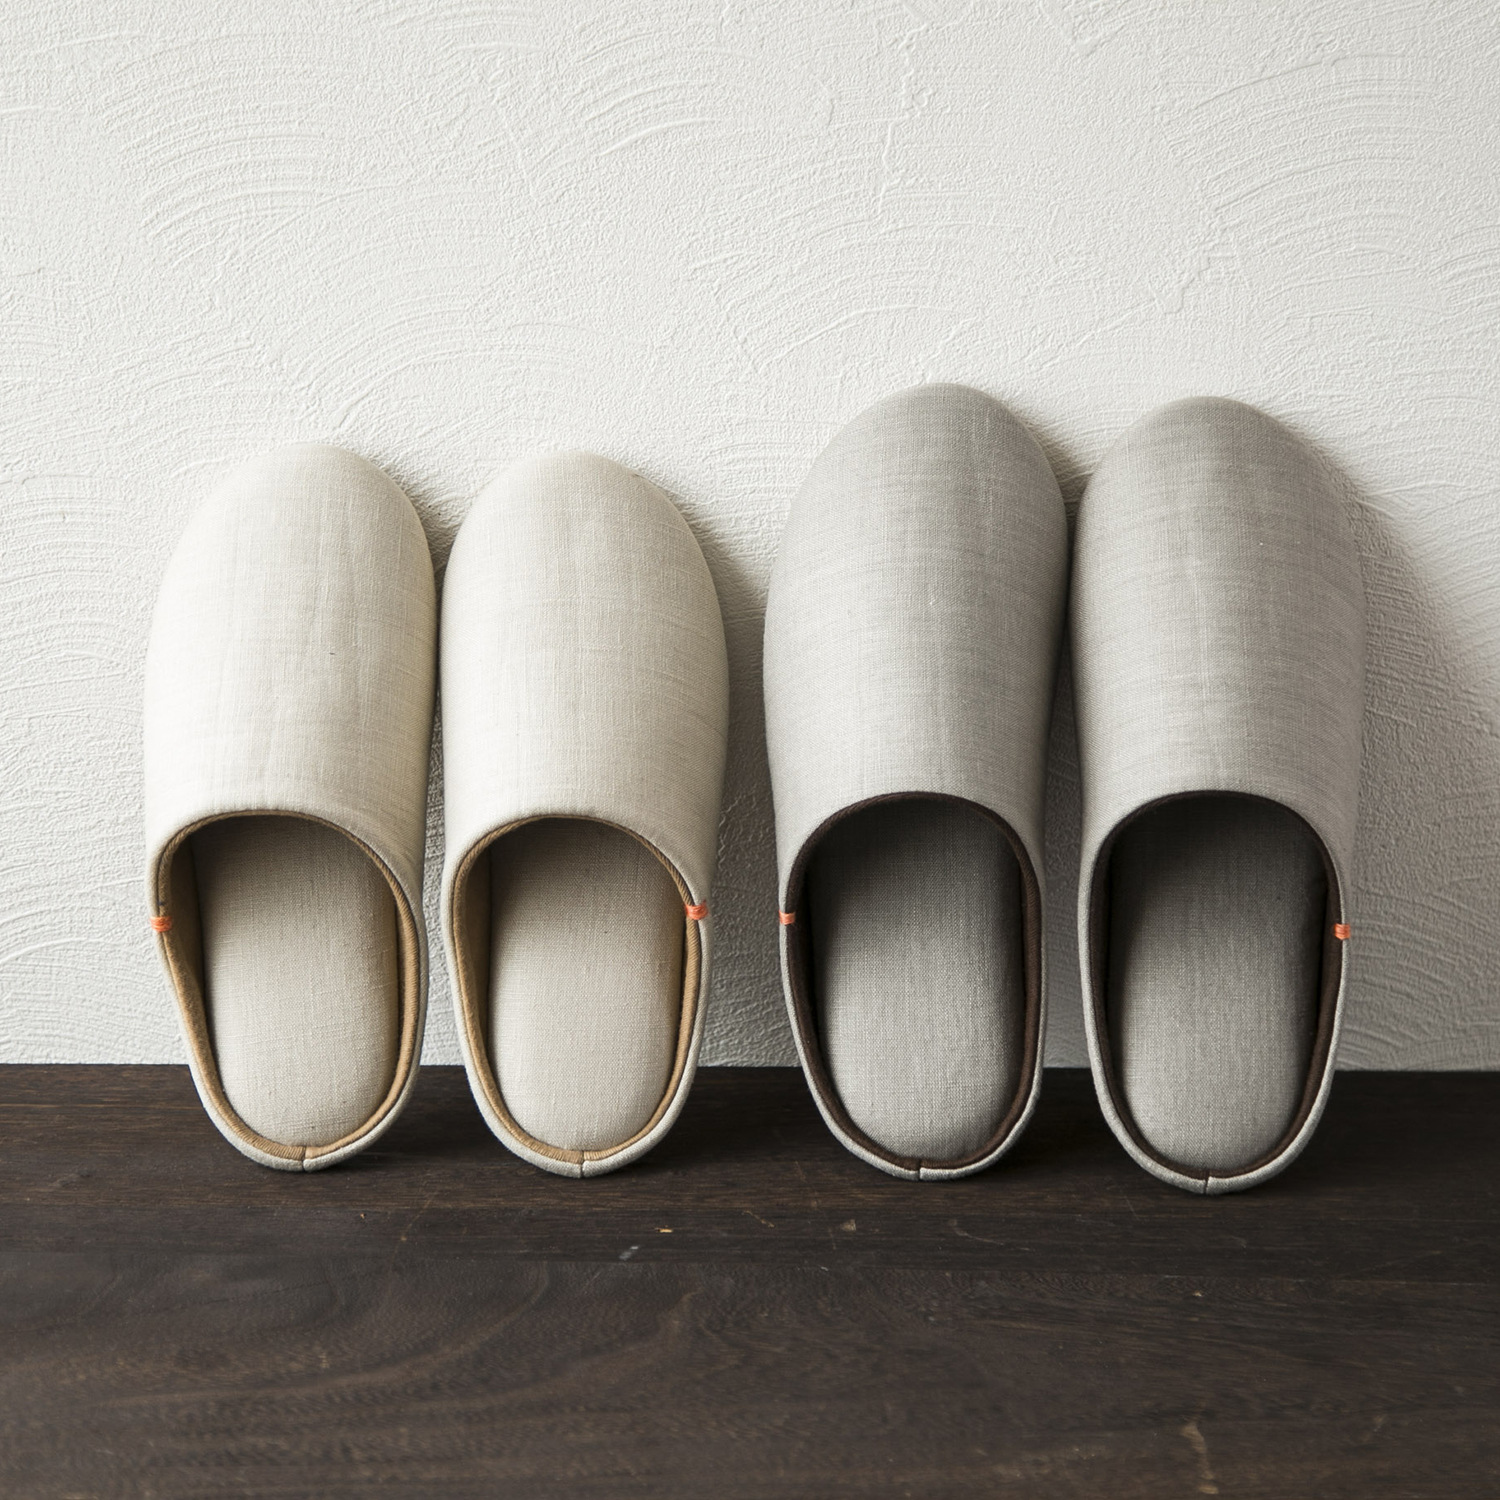 ABE HOME SHOES/ルームシューズ さふら